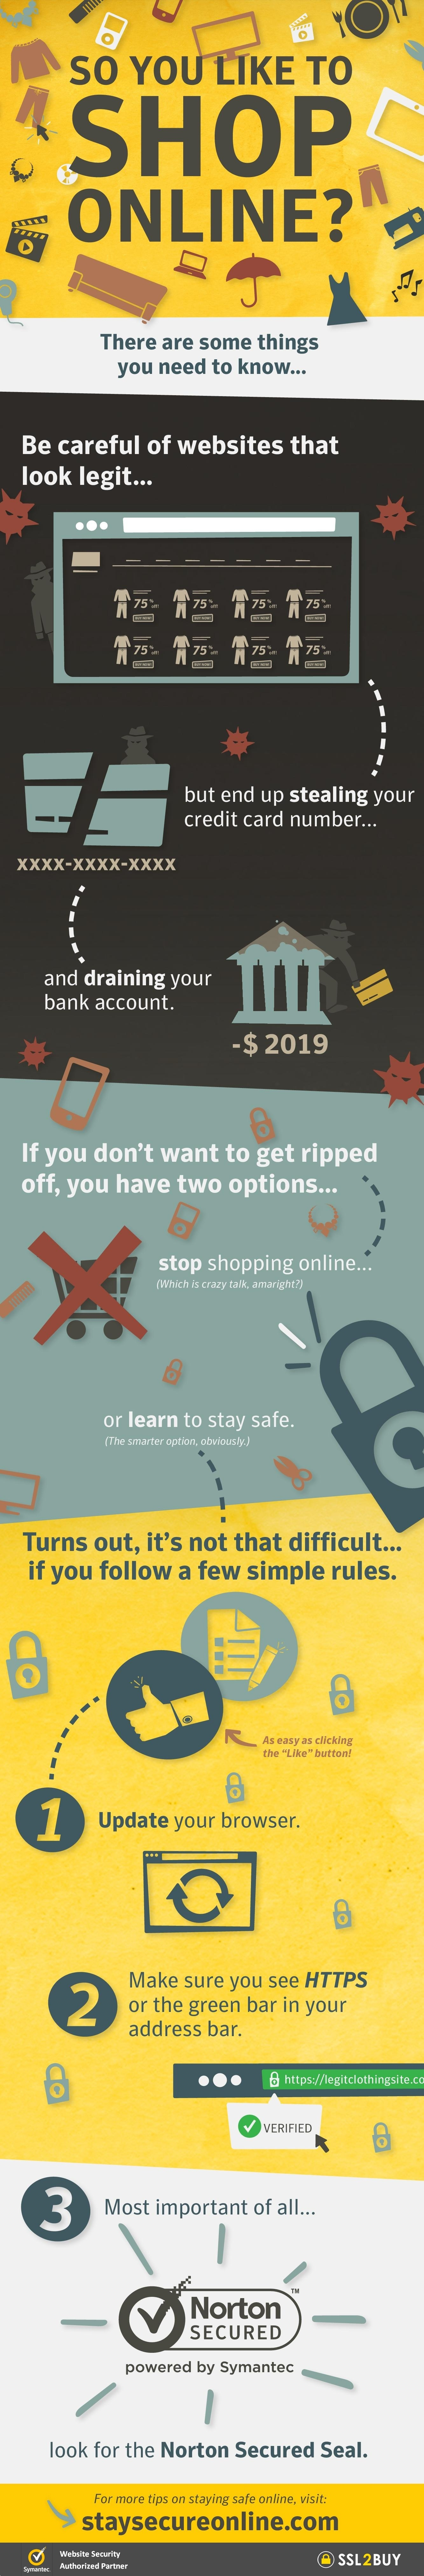 stay safe over the web with SSL